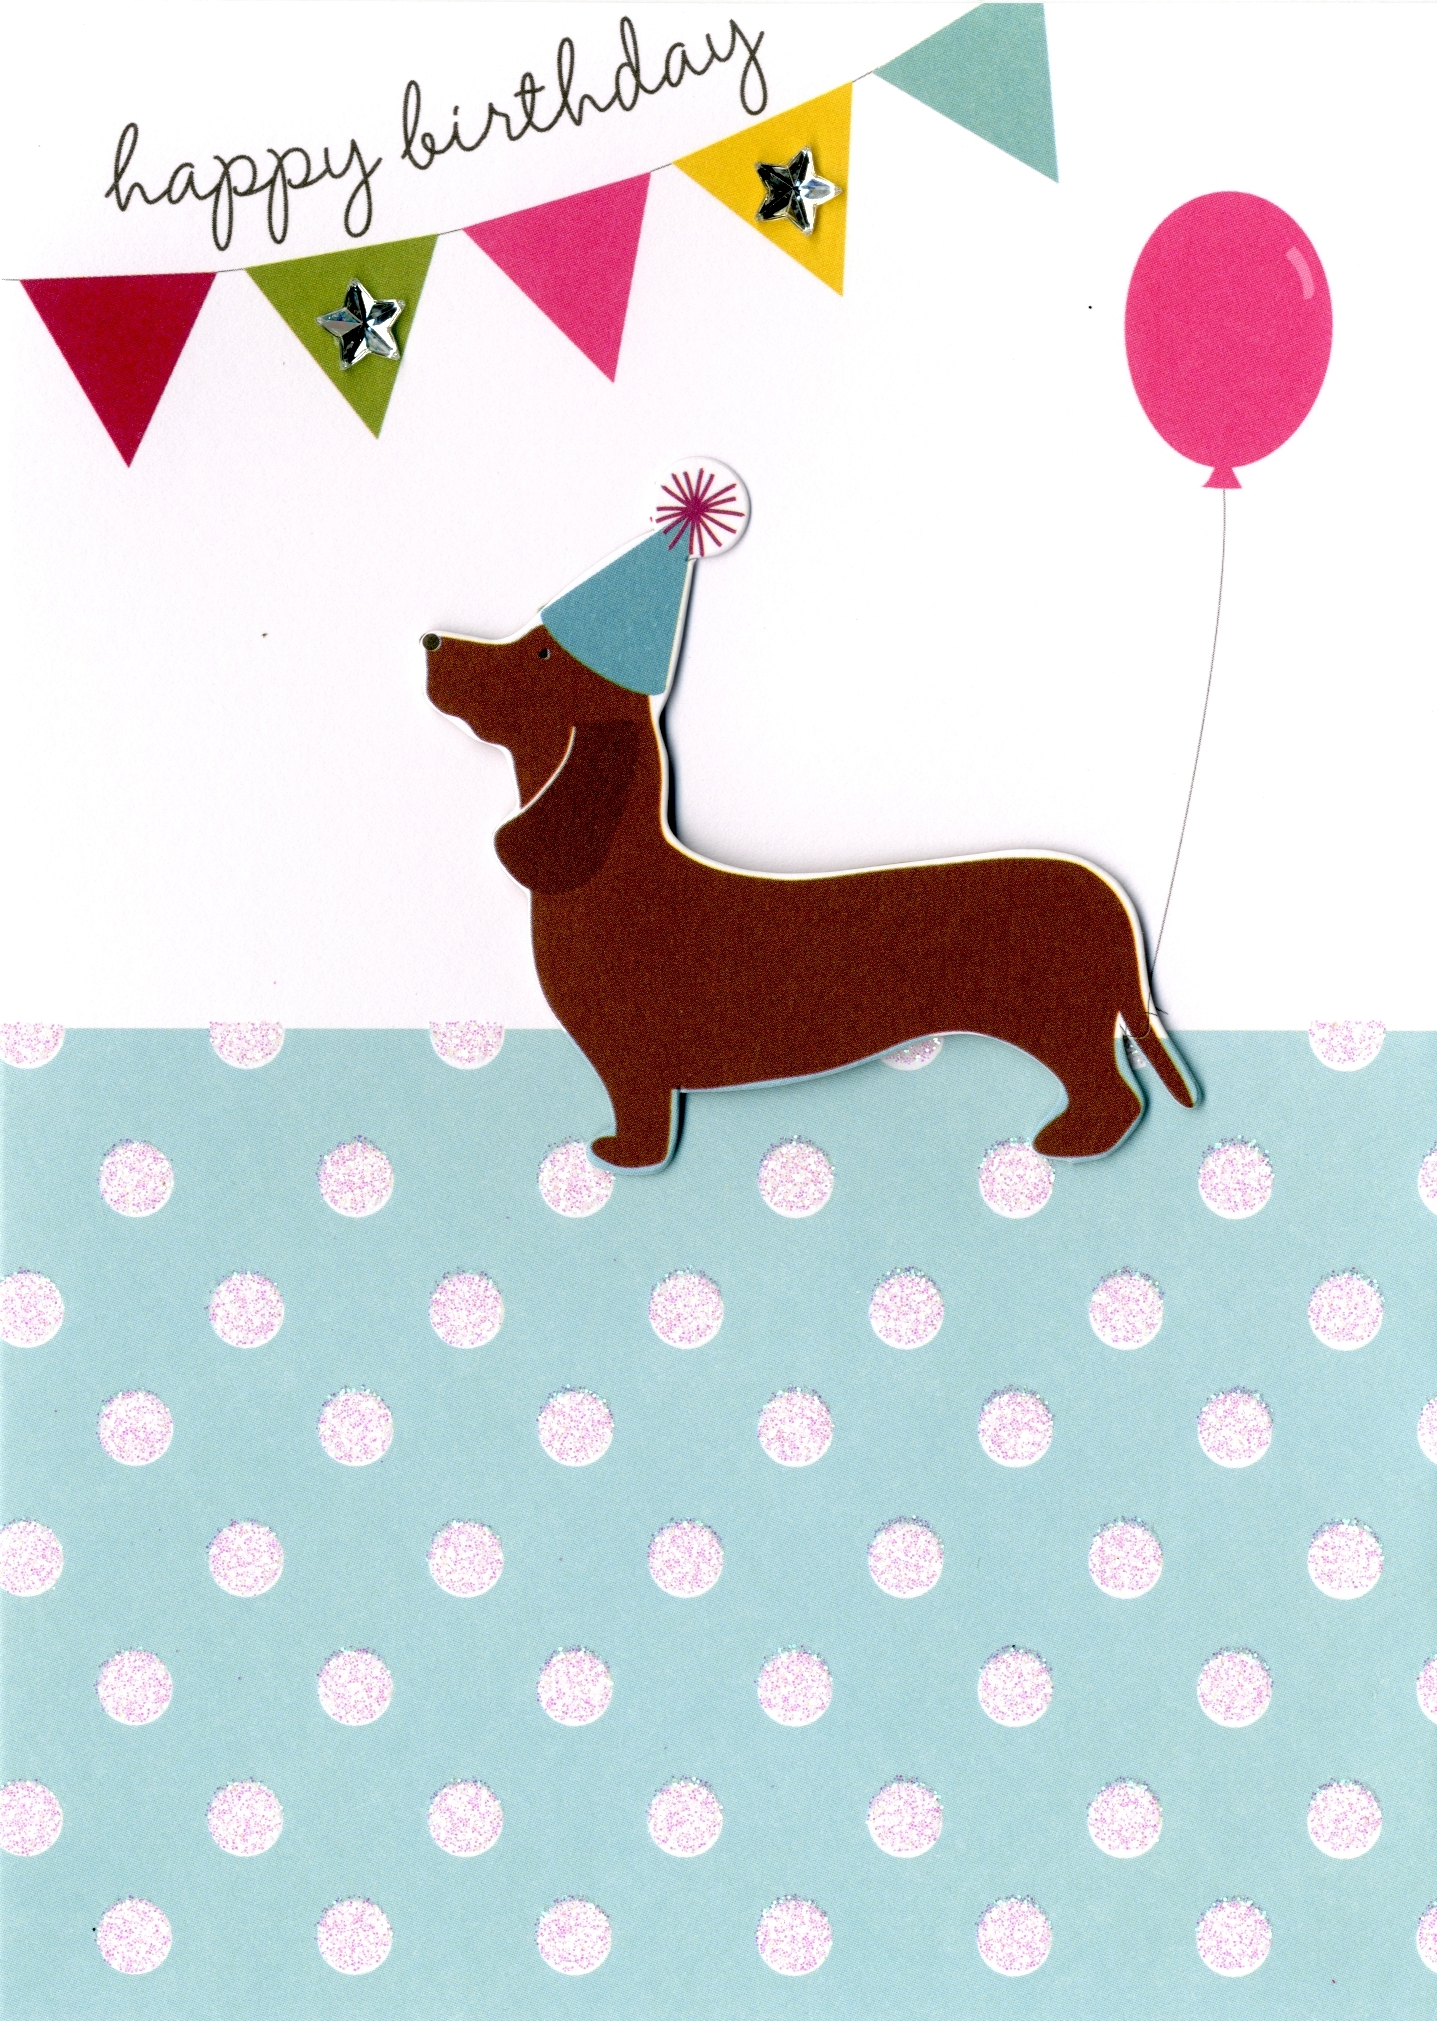 happy birthday sausage dog greeting card cards love kates online gift shop online card shop. Black Bedroom Furniture Sets. Home Design Ideas